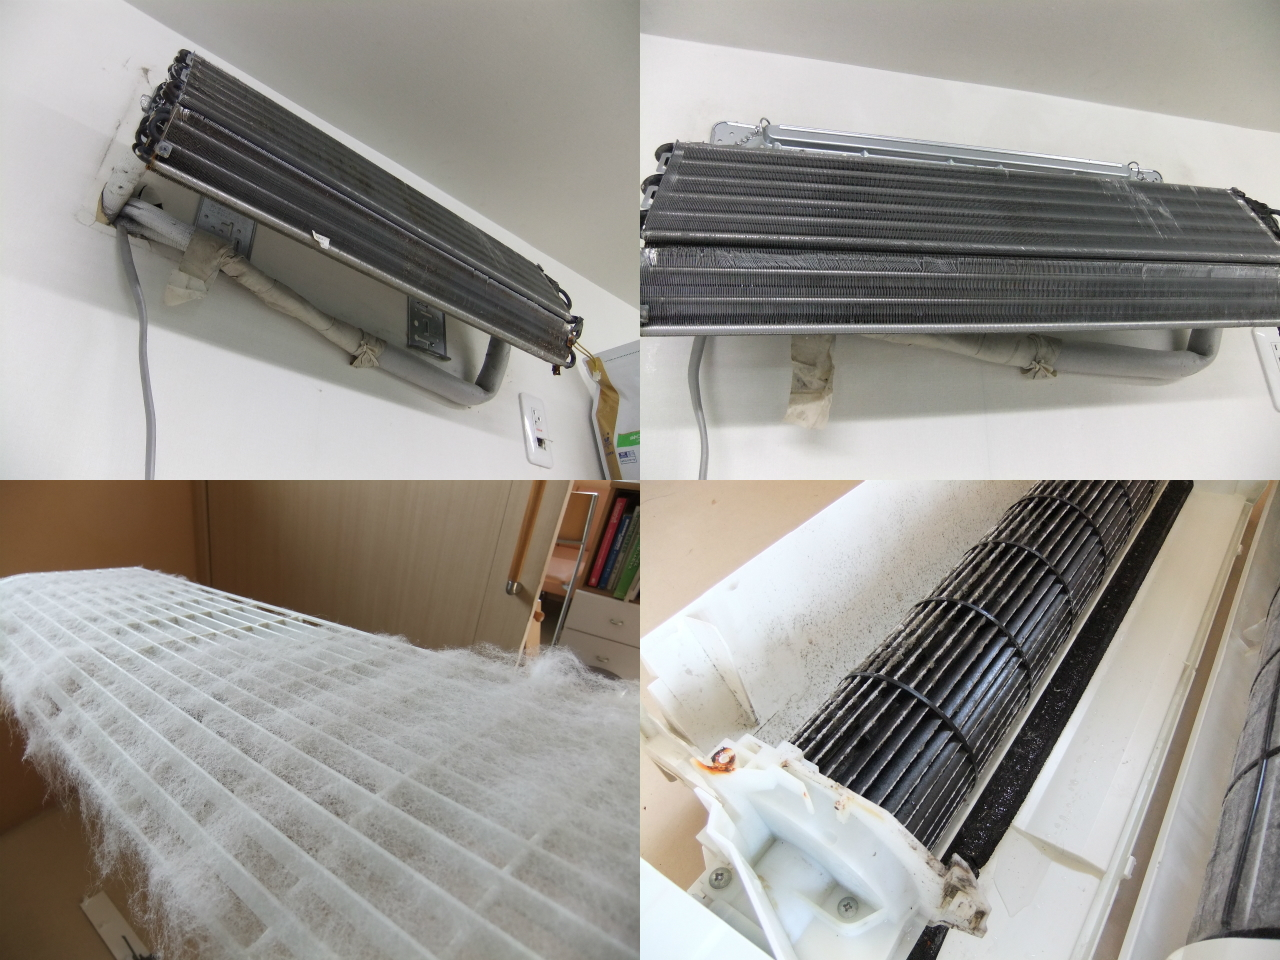 http://ajras.net/images/120817-aircon3.jpg